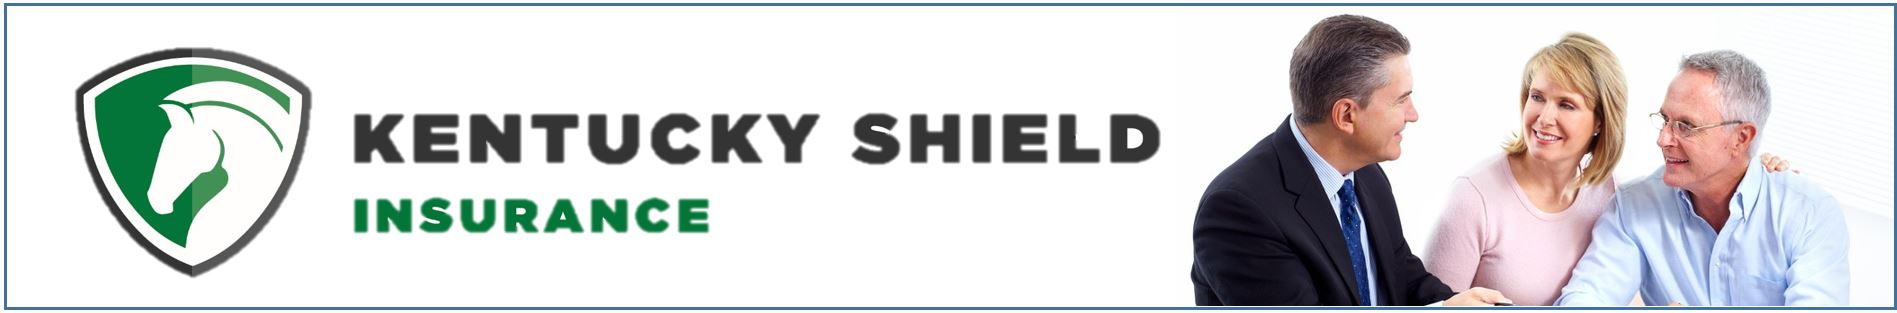 Kentucky-Shield-Louisville-Auto-Insurance-Contact-Us